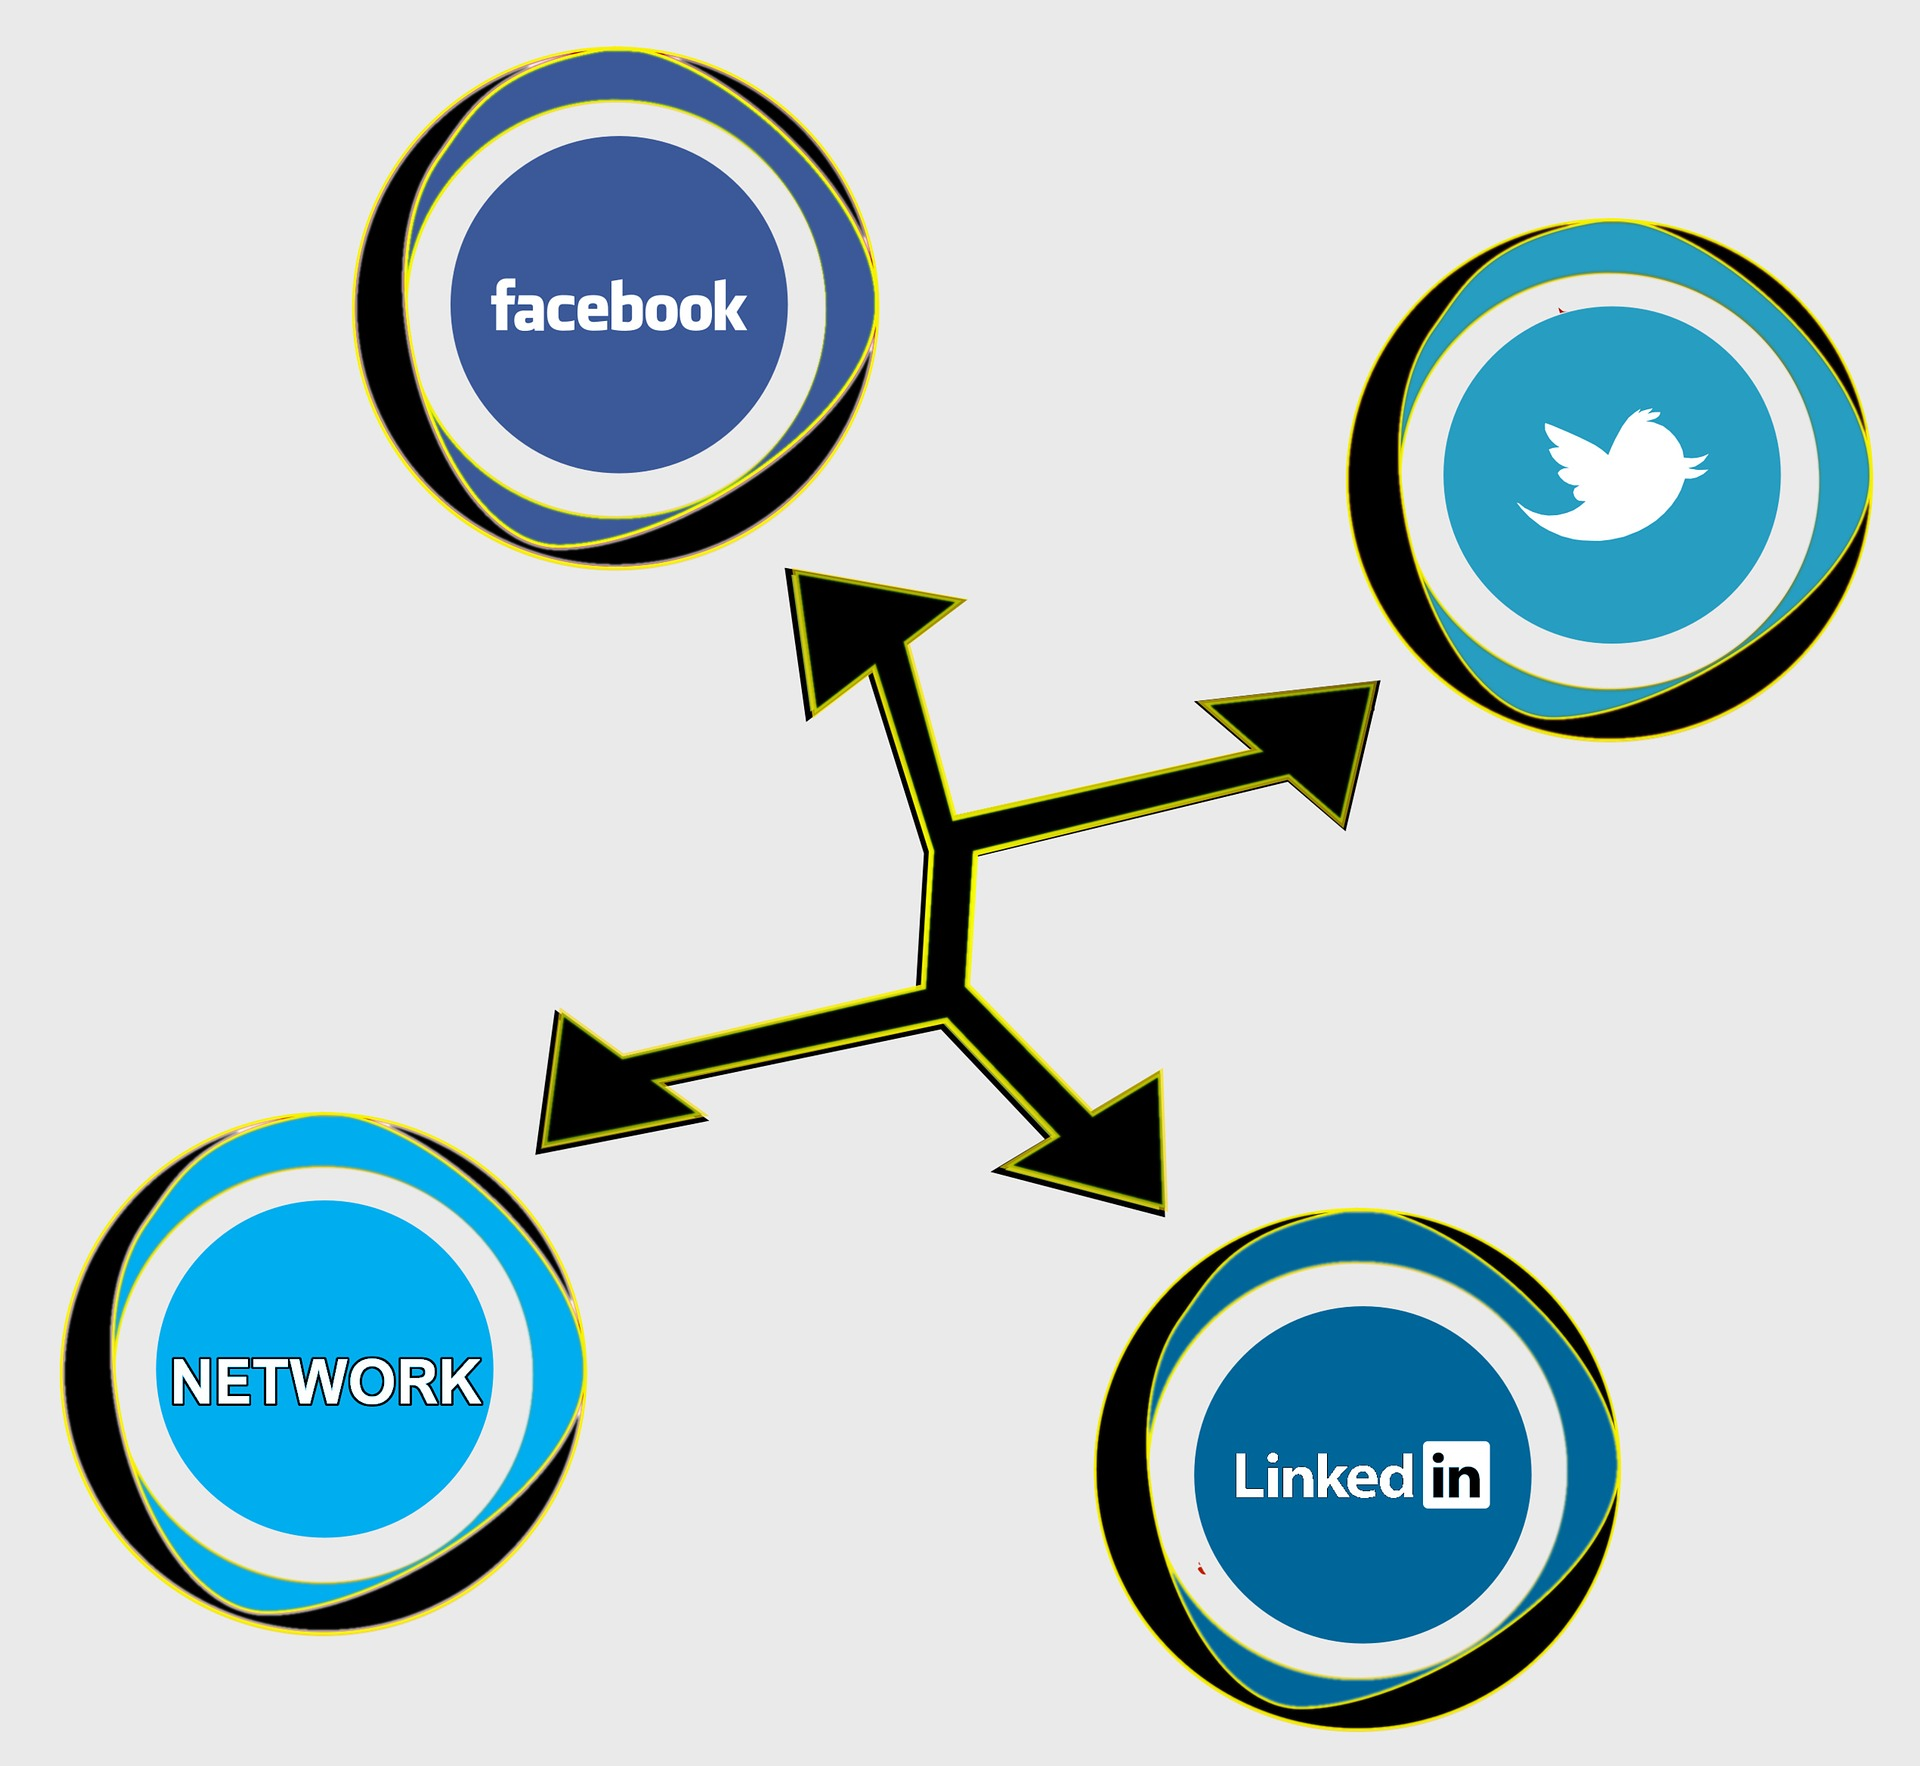 four circles in blue connected with black arrows. each circle has the initial or logo of social media like twitter, FB, LinkedIn, network